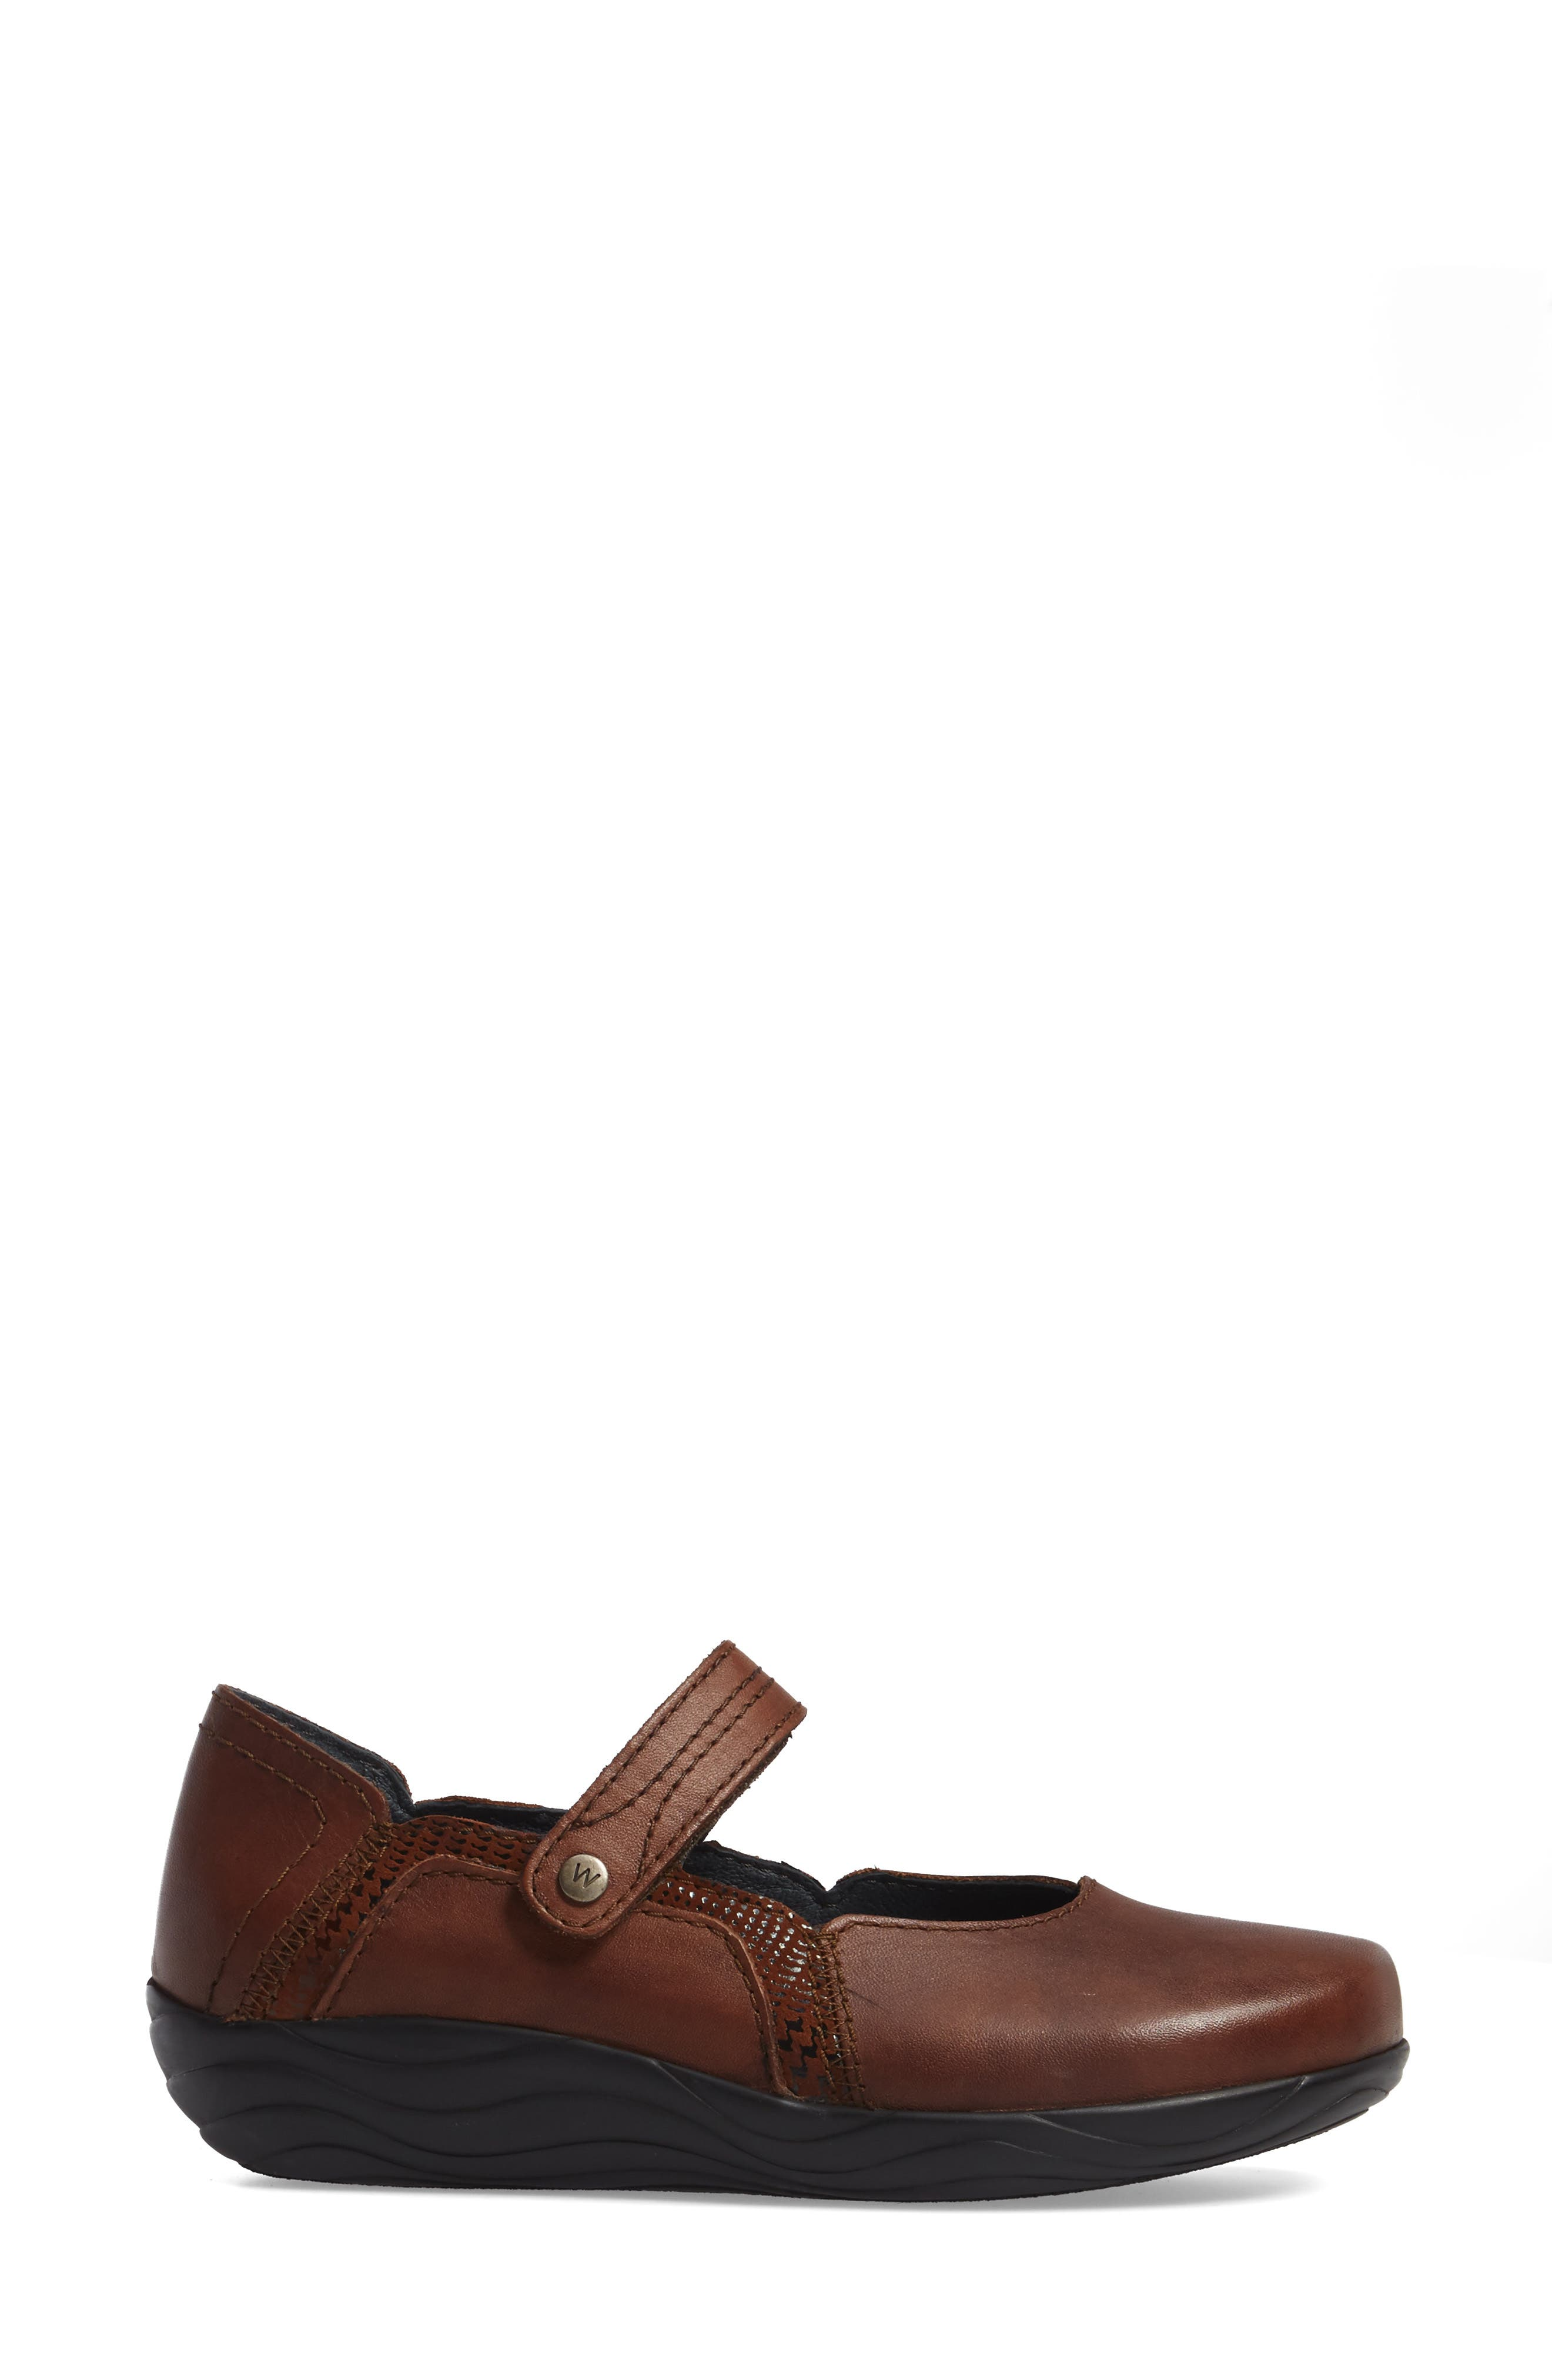 Gila Mary-Jane Flat,                             Alternate thumbnail 3, color,                             Cognac Leather